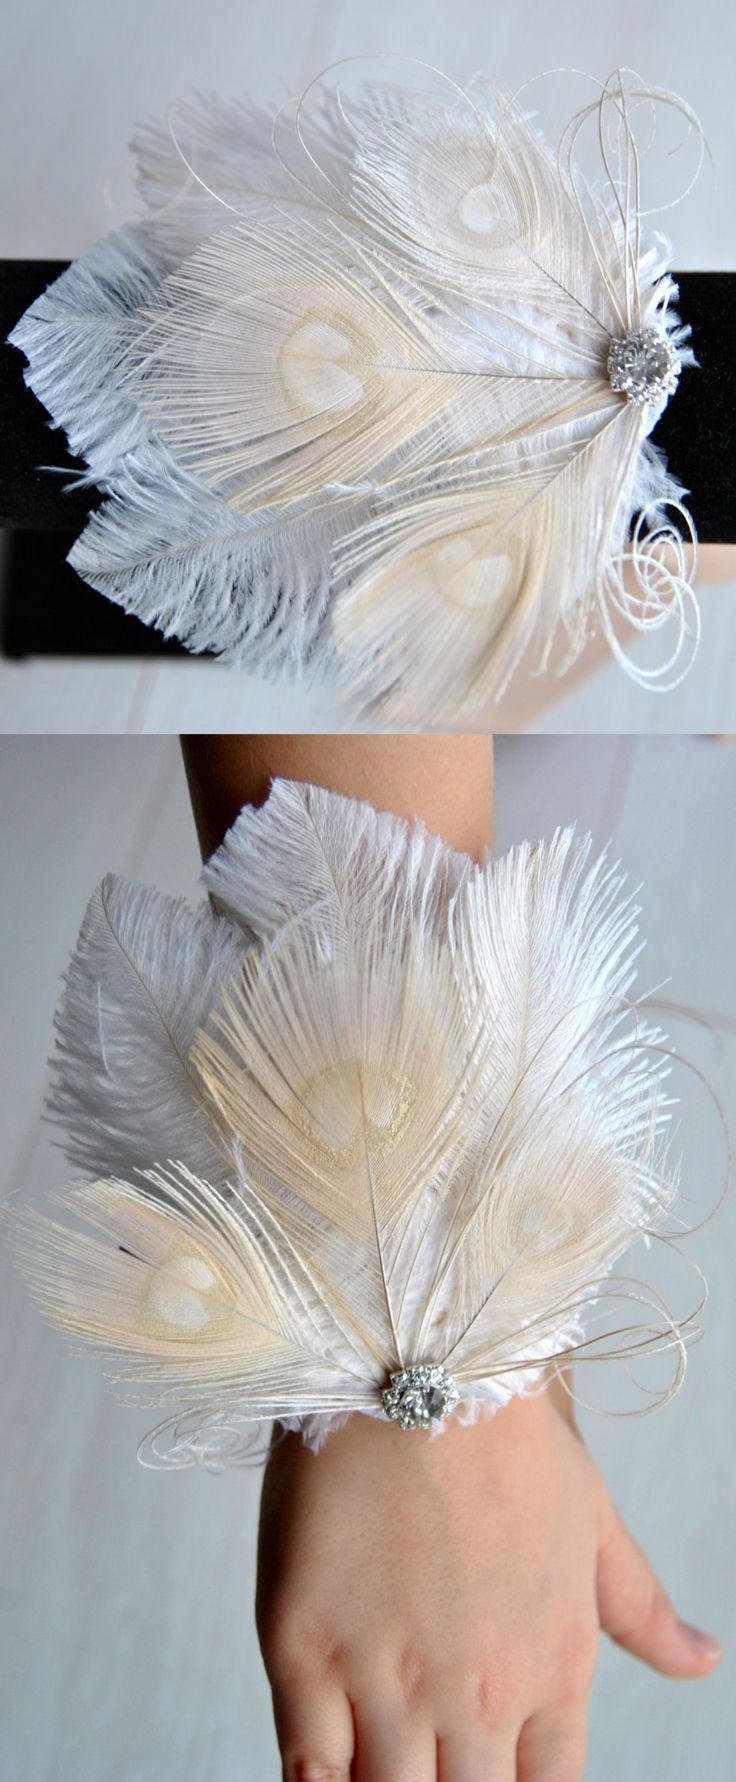 A Great Gatsby Style Wrist Corsage $12.00 will definitely catch everyone's eye. Made of ostrich and peacock feathers embellishment with rhinestone centre.  This wristlet corsage is perfect for weddings, special events, proms, new years eve and Christmas parties with art deco 1920's theme. #wristcorsage #ostrichfeathers #christmasparty #gatsbyparty #newyearseve #flappergirls #Gatsby #affiliatelink #etsyfinds